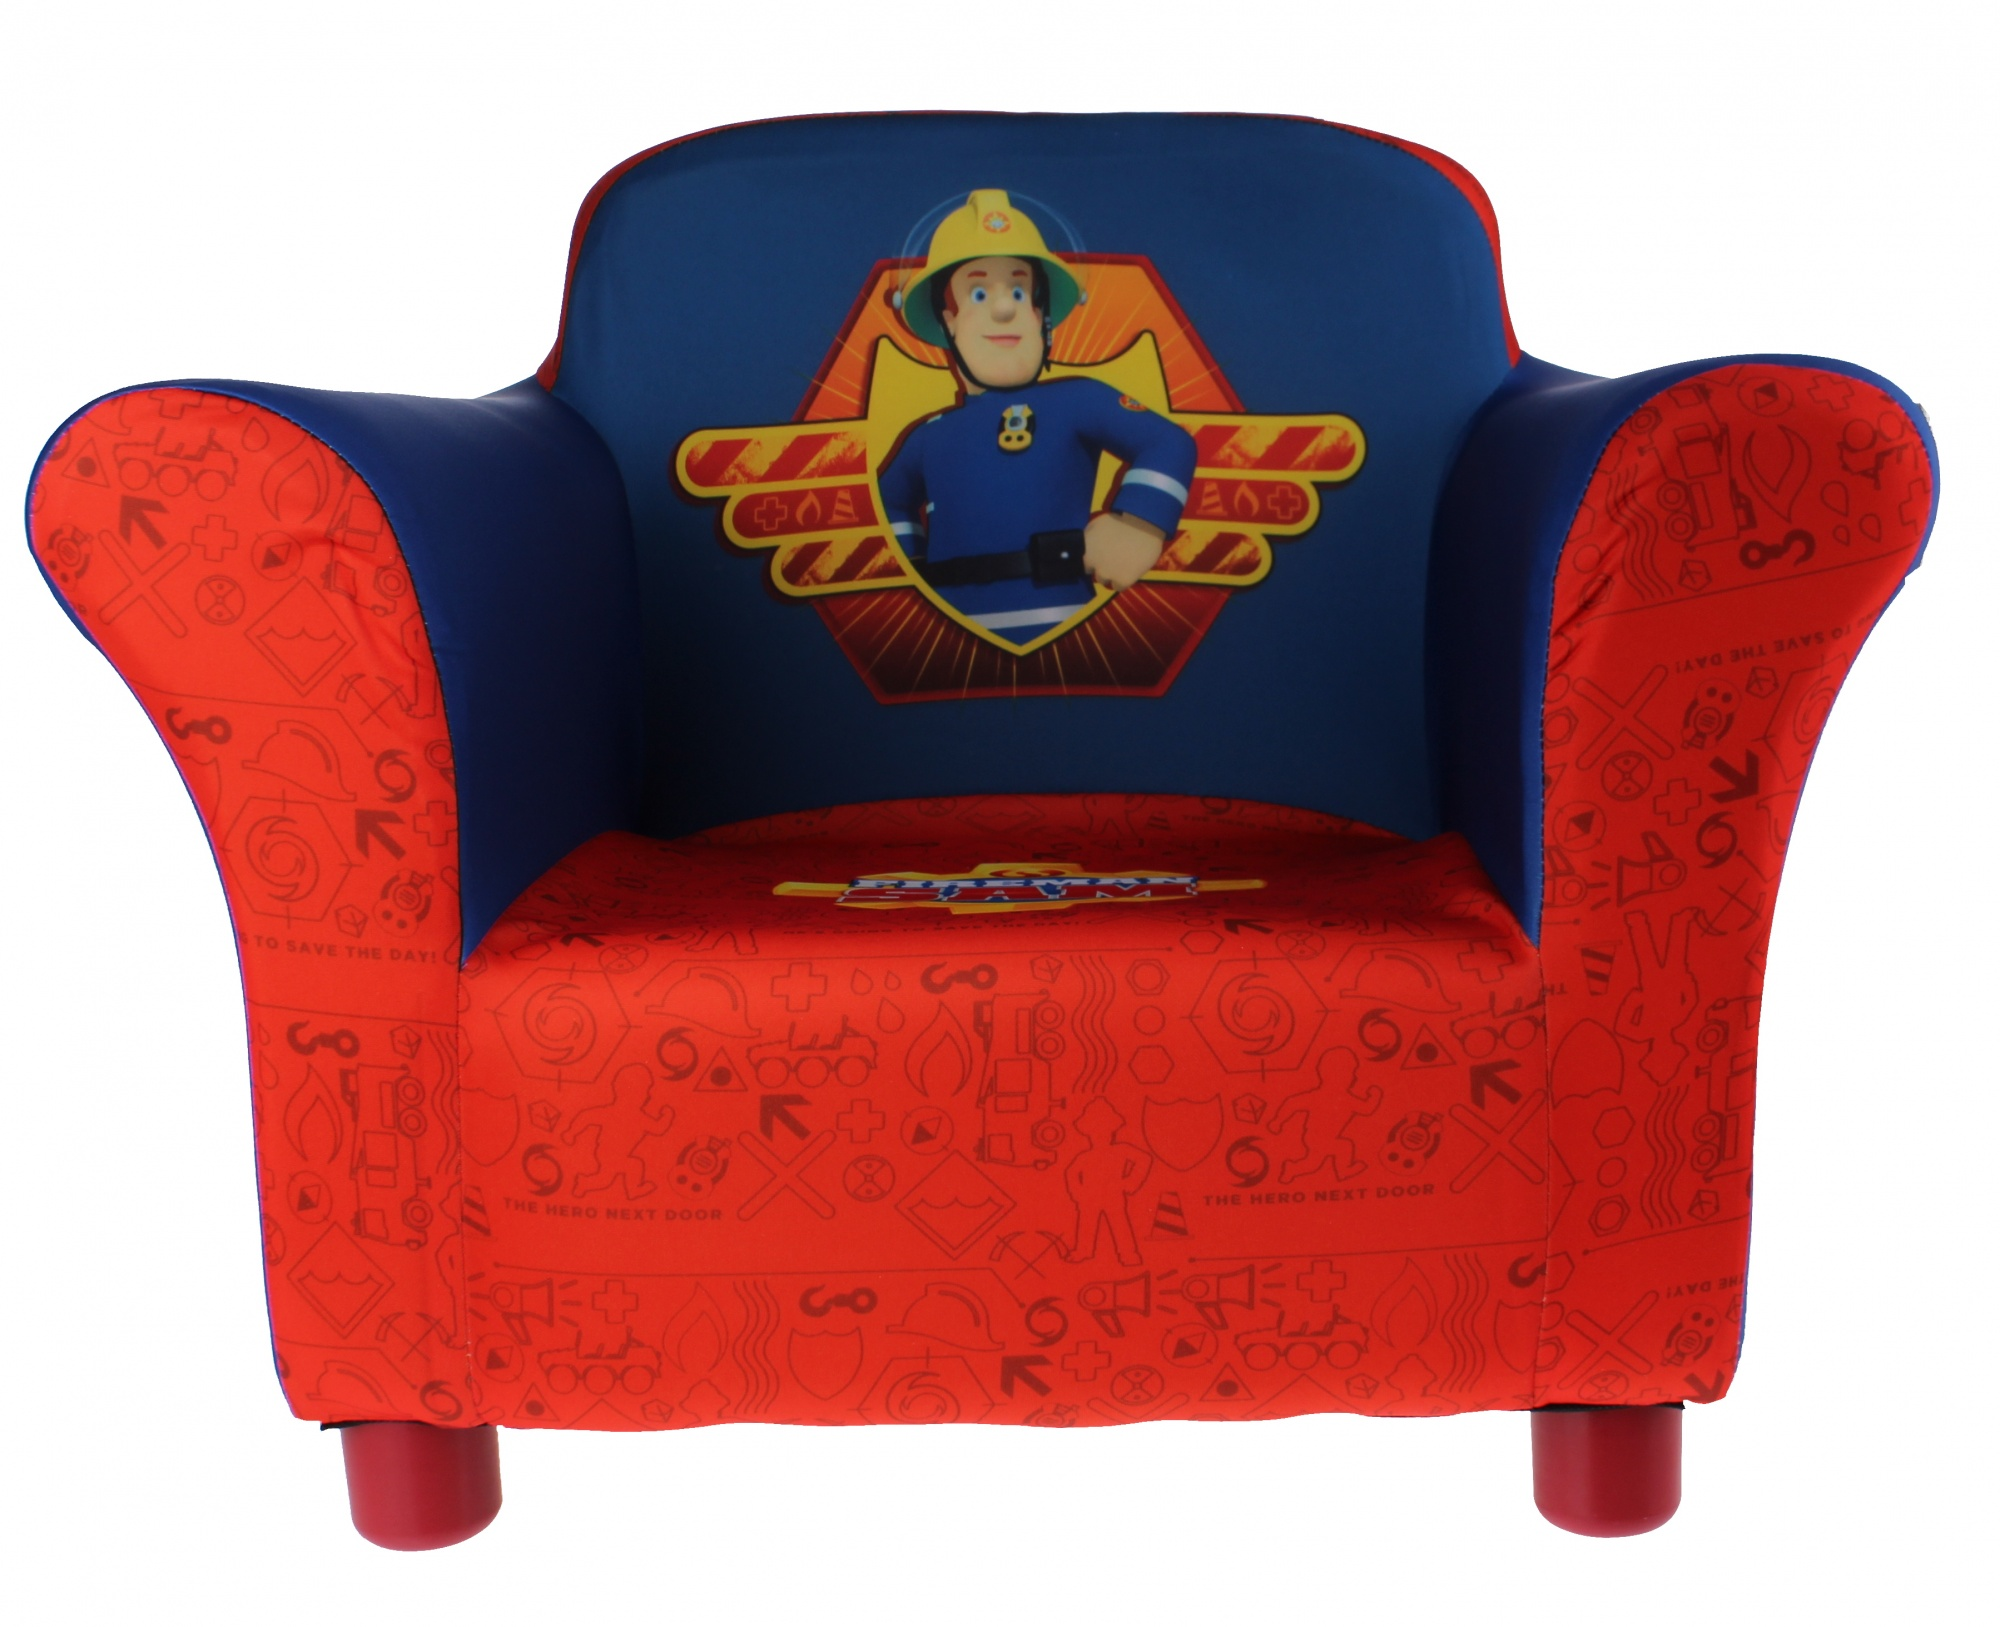 Brandweerman Sam Garage : Delta kids fireman sam chair red blue internet toys